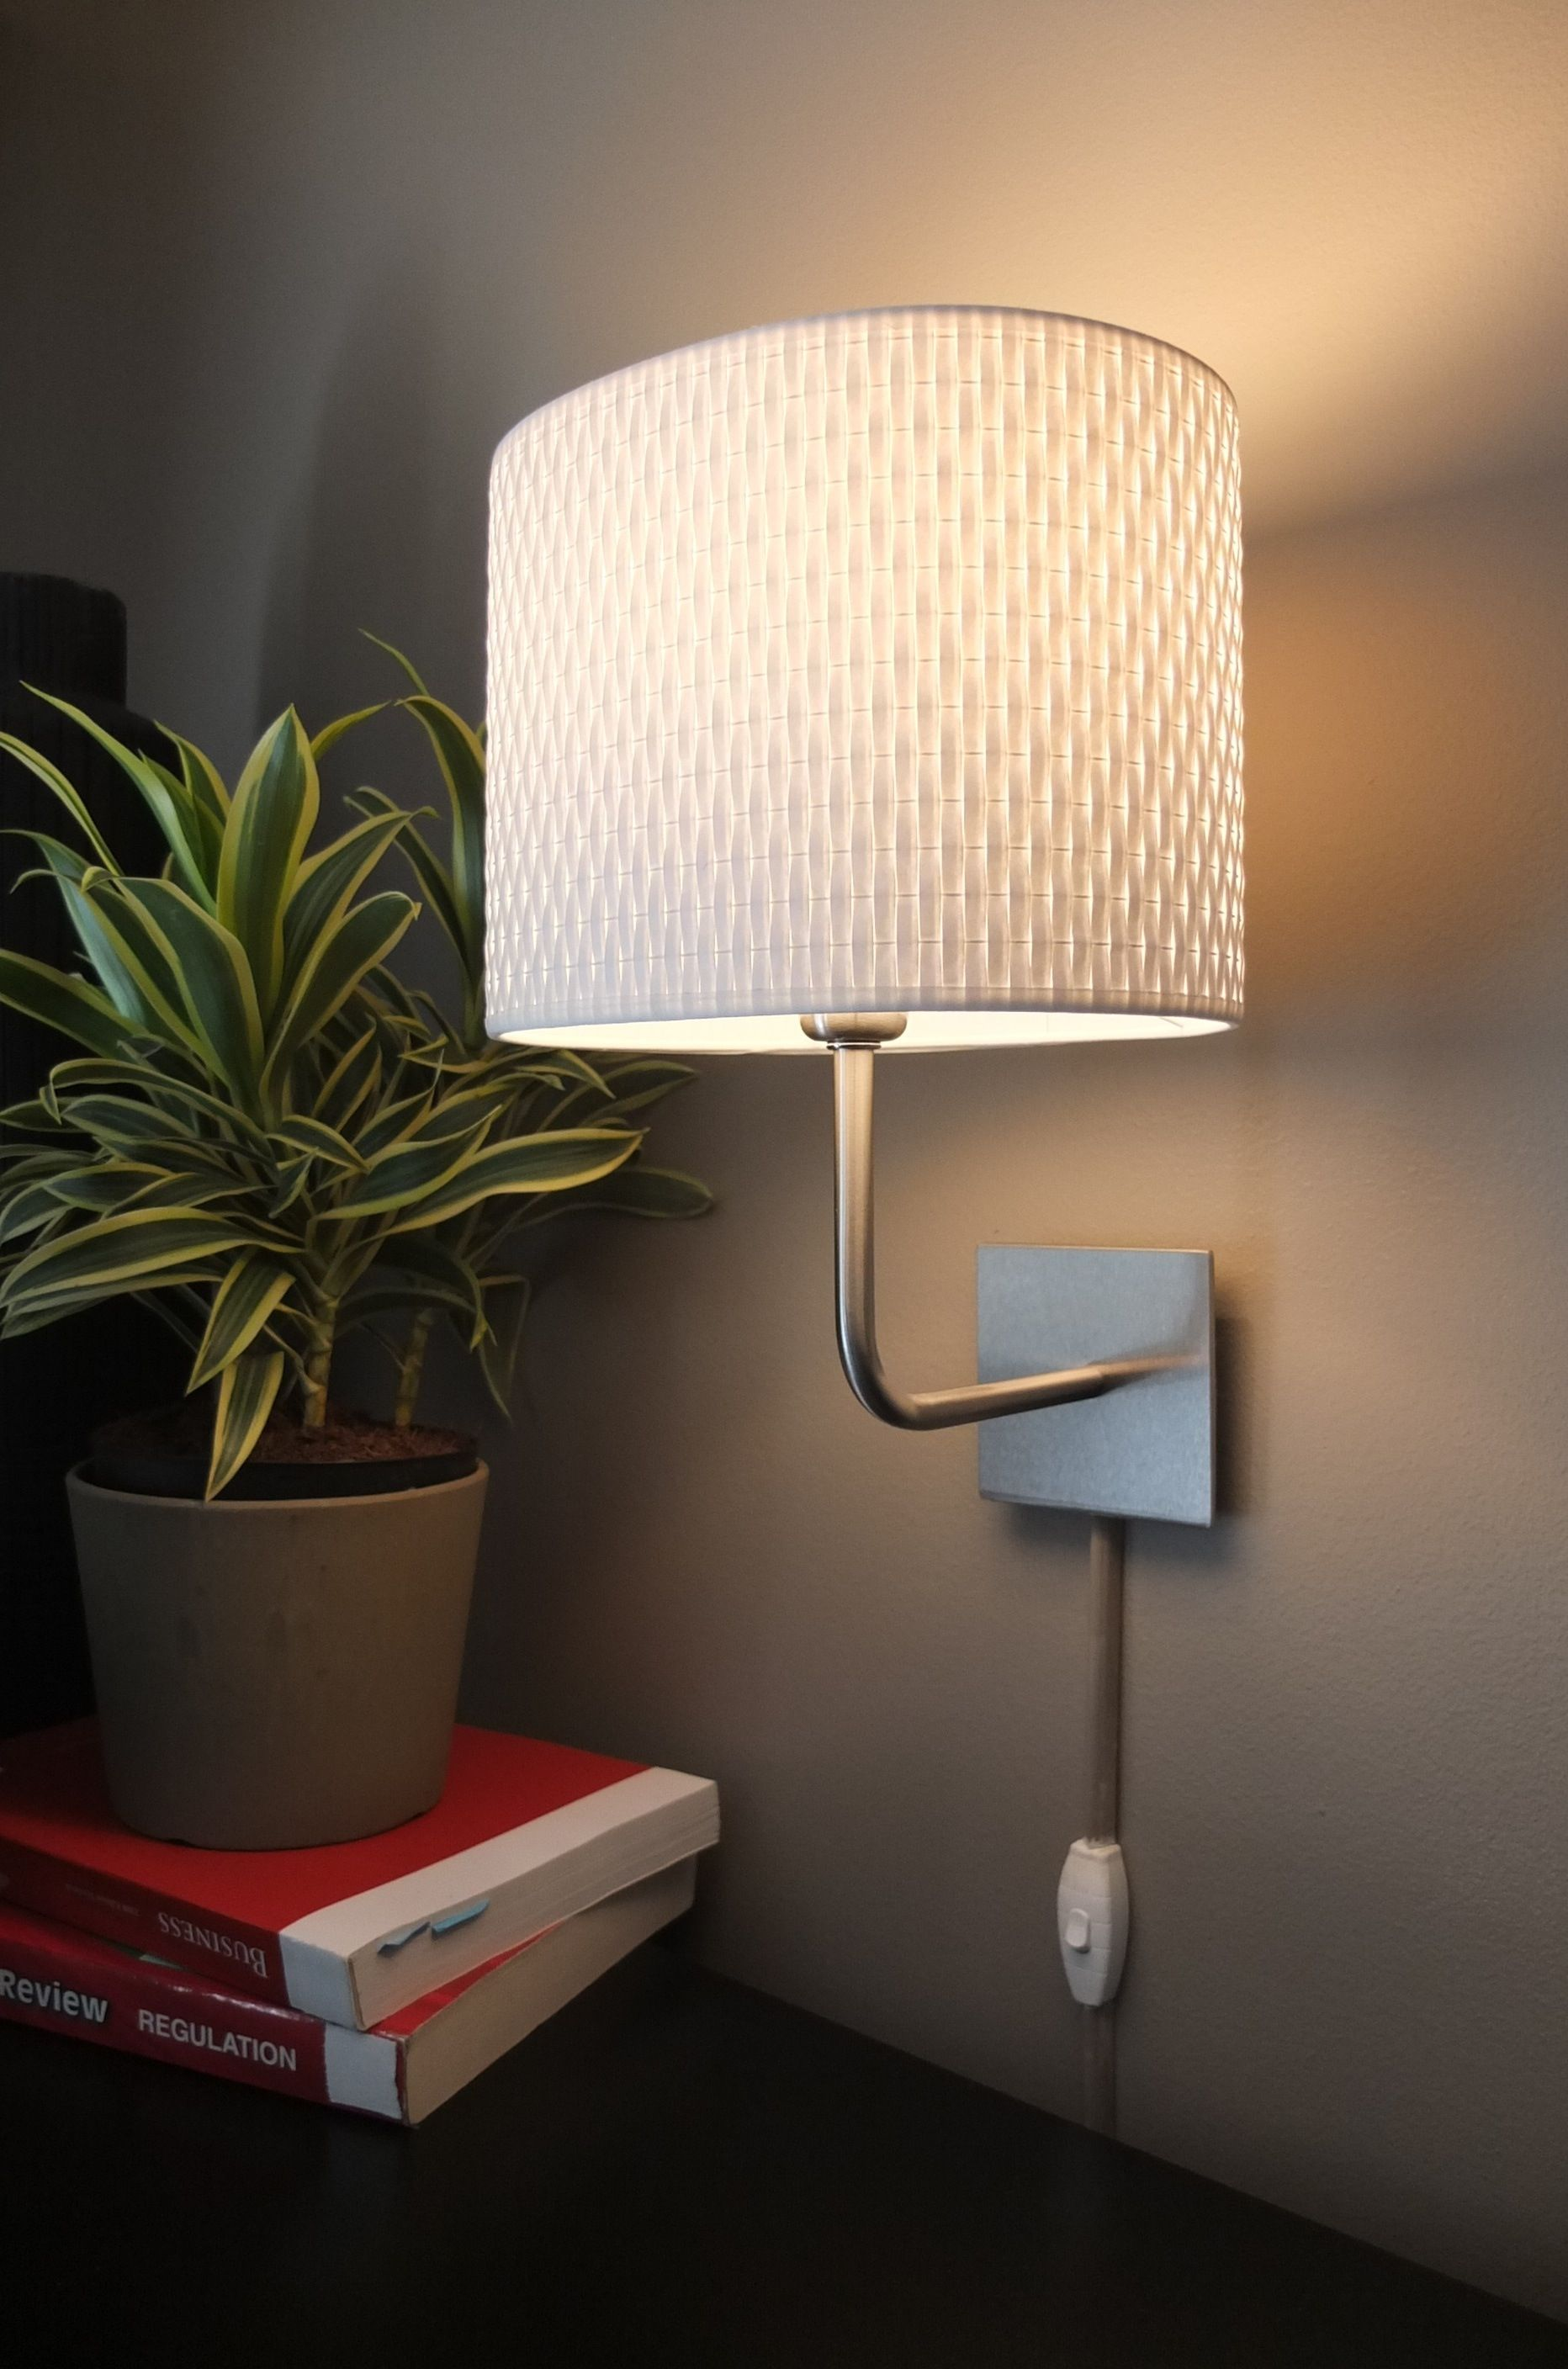 Wall mounted ikea lamps are an easy way to add light in a room wall mounted ikea lamps are an easy way to add light in a room without a ceiling fixture alng has two color choices and a coordinating floor and table mozeypictures